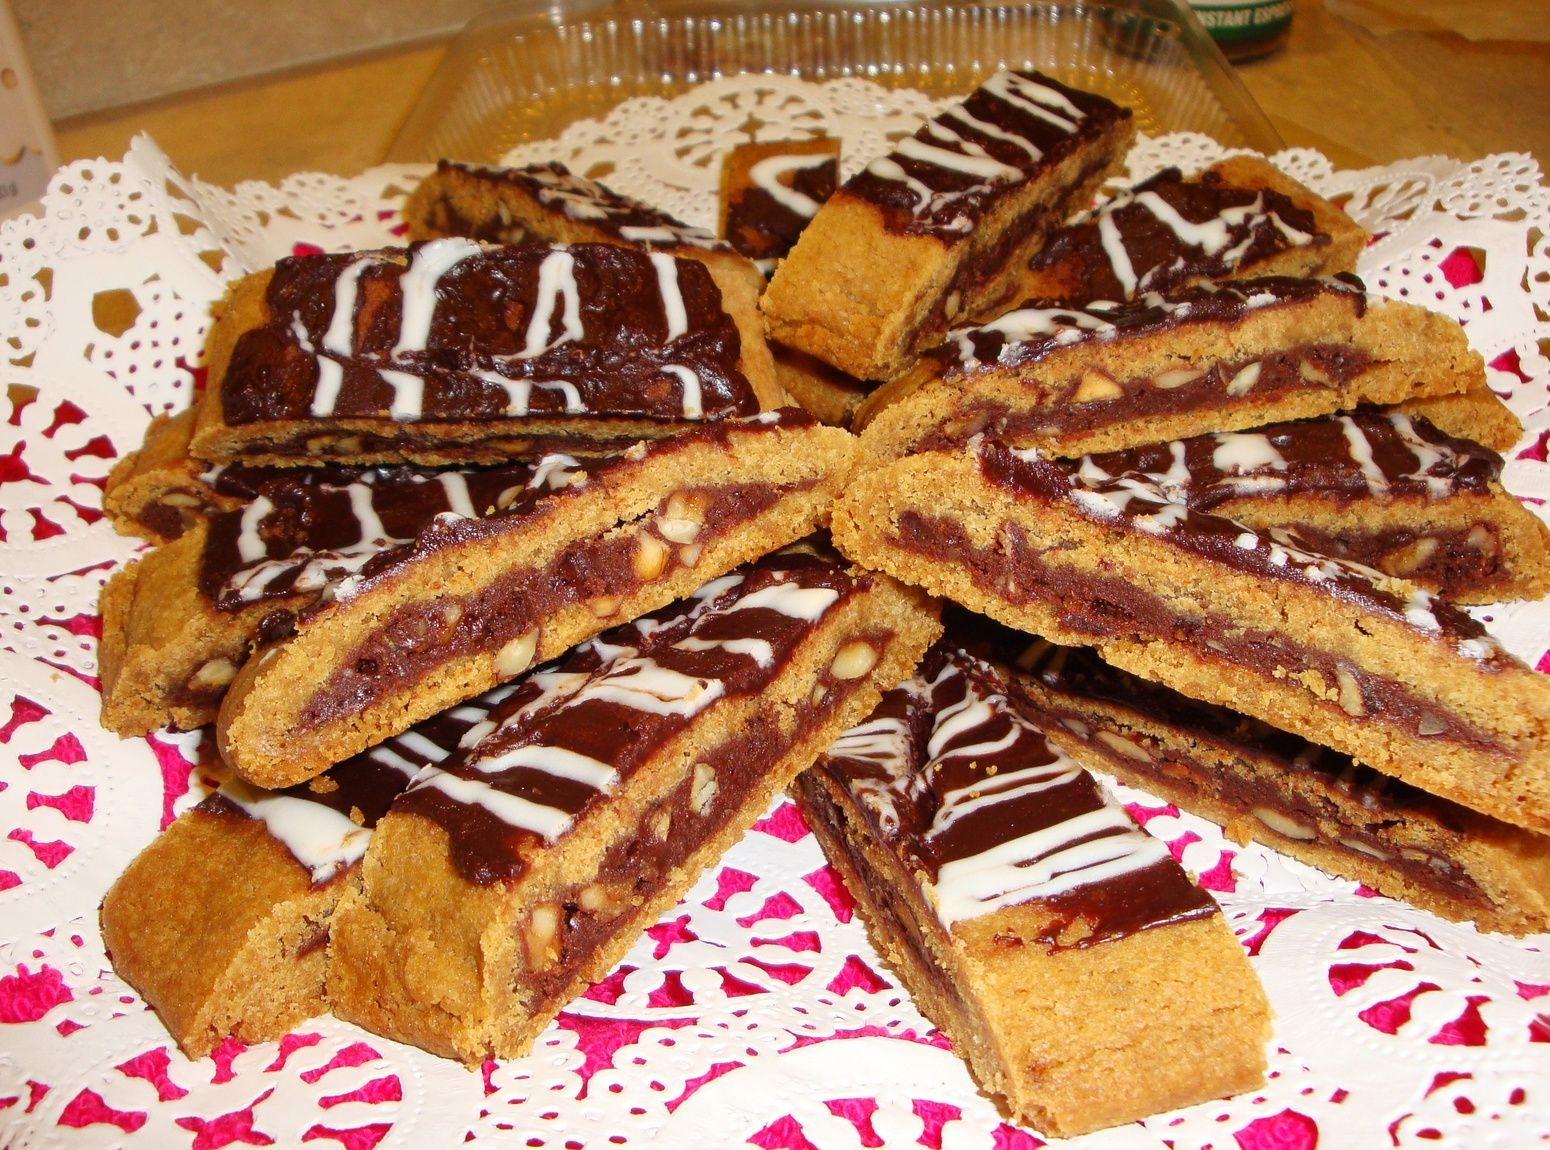 Hazies - chocolate hazlenut filled cookie bars.  Won Grand Prize in Just a Pinch's Cookie Celebration constest!